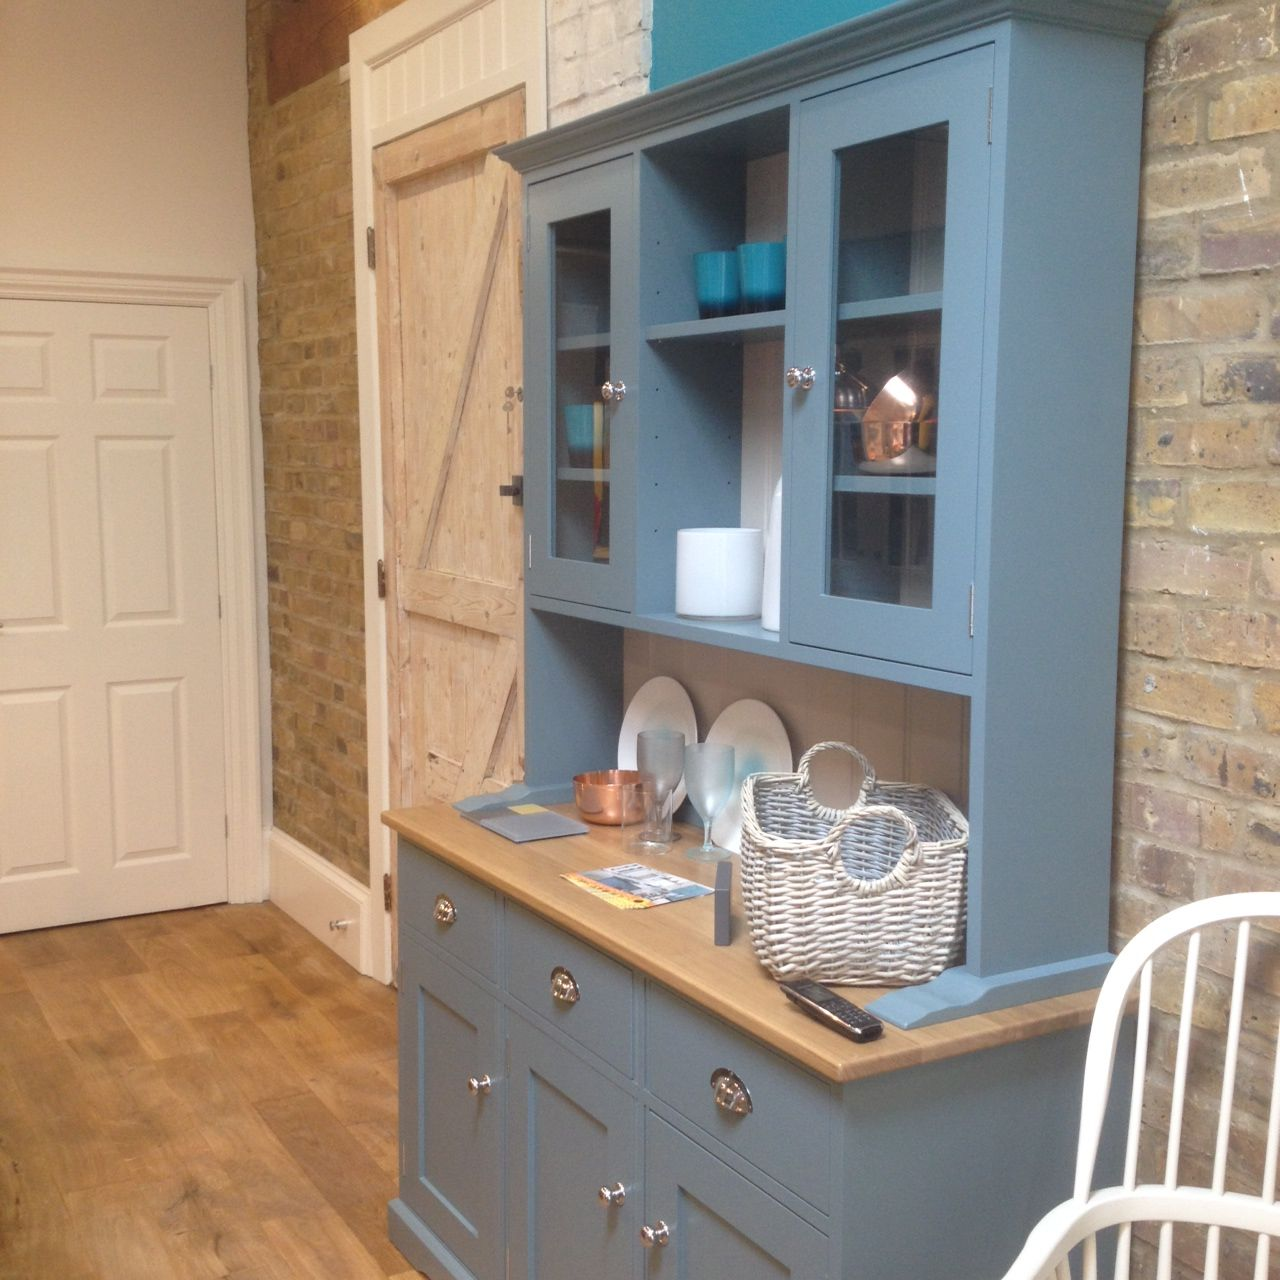 Modern And Traditional Kitchens Bedrooms Furniture From John Lewis Of Hungerford